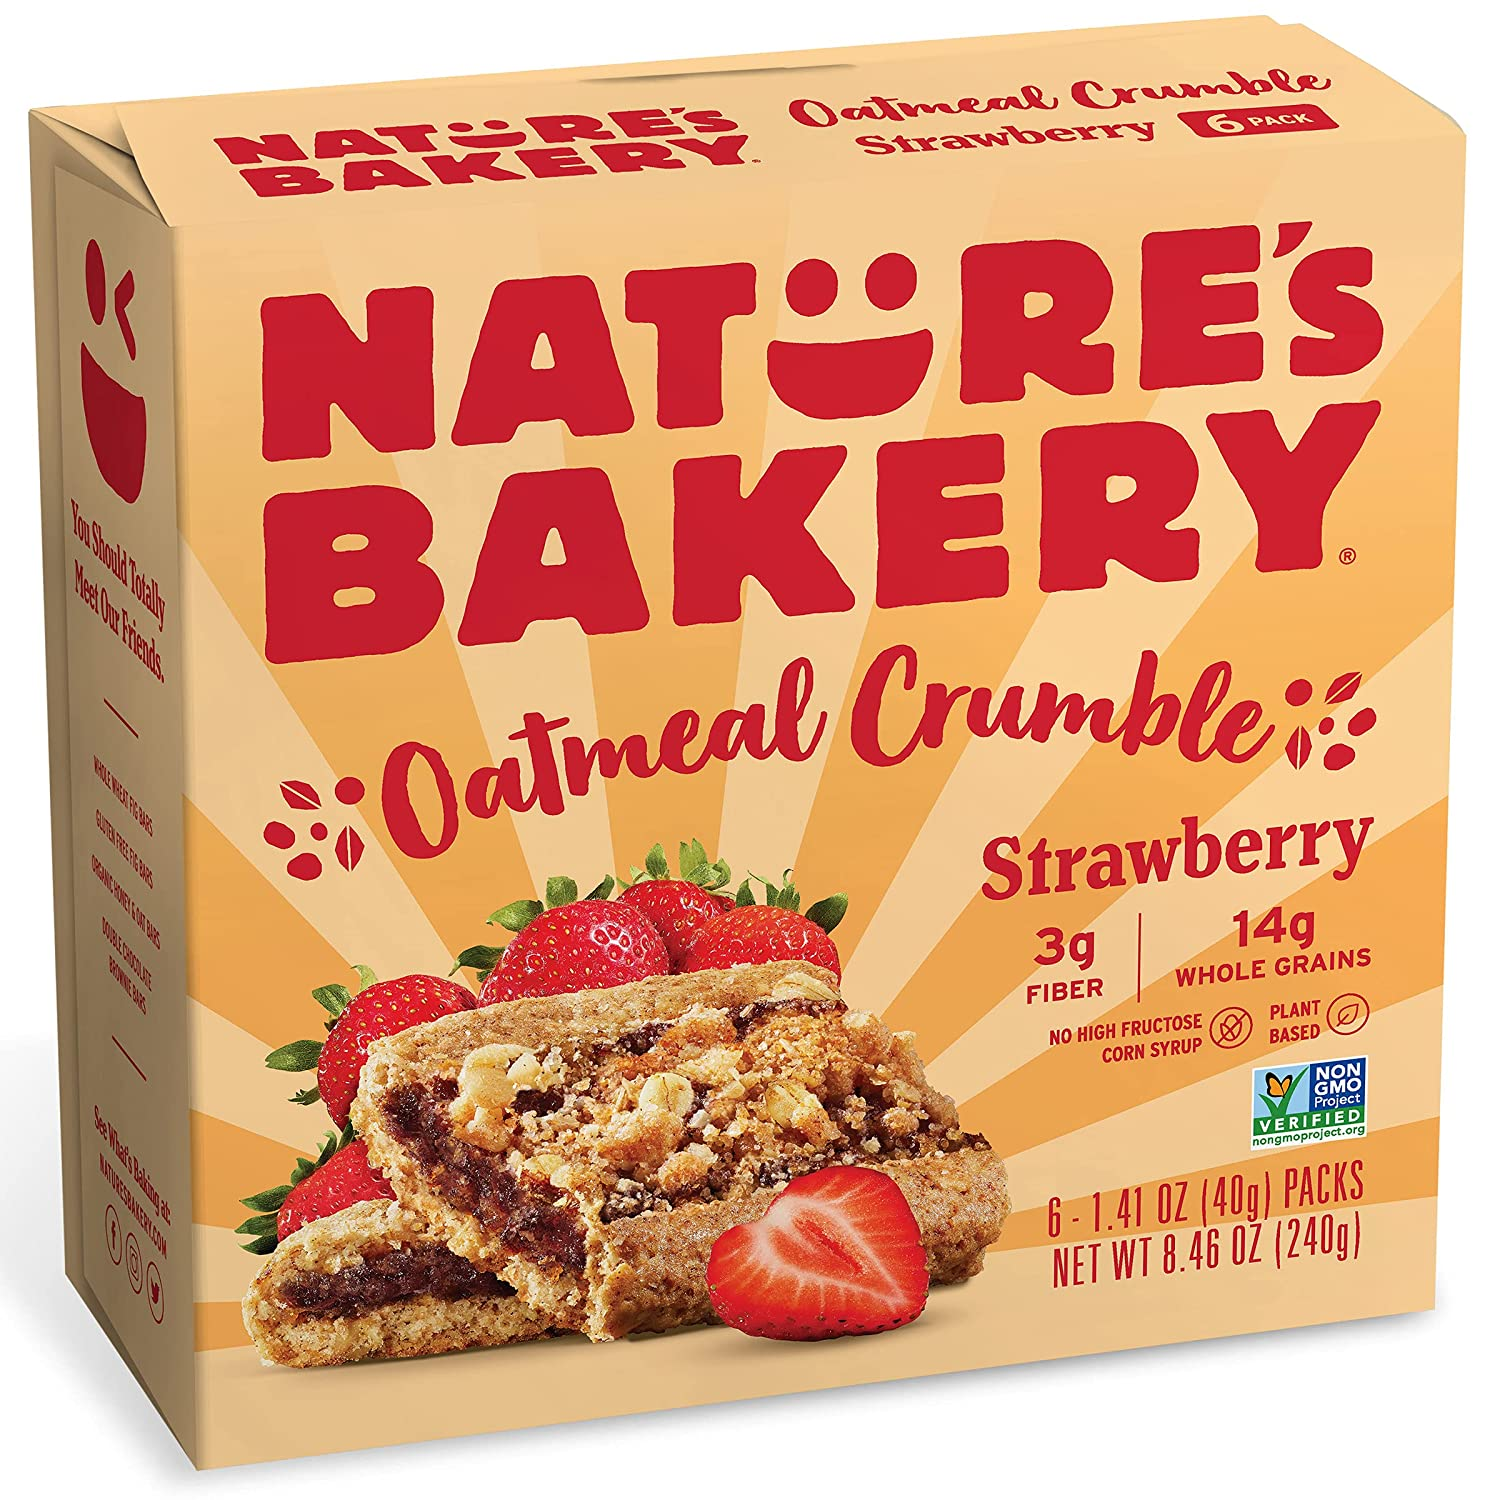 Nature's Bakery Nature's Bakery Oatmeal Crumble Bars, Strawberry, Real Fruit, Vegan, Non-Gmo, Breakfast bar, 1 Box With 6 Bars, 6Count